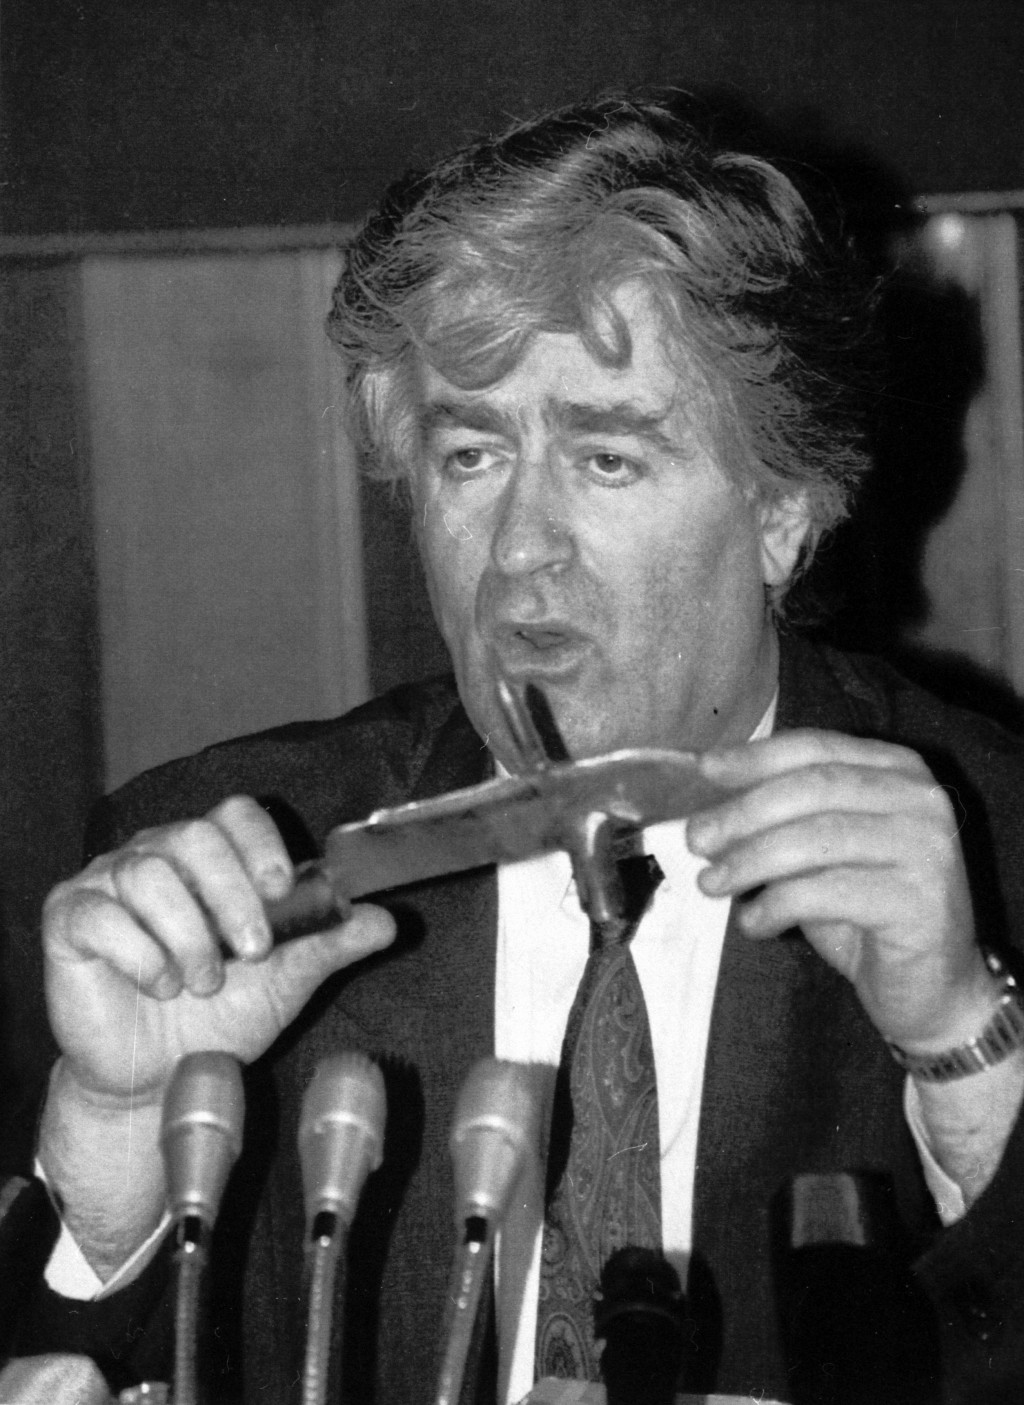 FILE - In this Sept. 23, 1992 file photo, Bosnian Serb leader Radovan Karadzic holds a knife he said was seized from Bosnian Croat soldiers in Bosnia ...